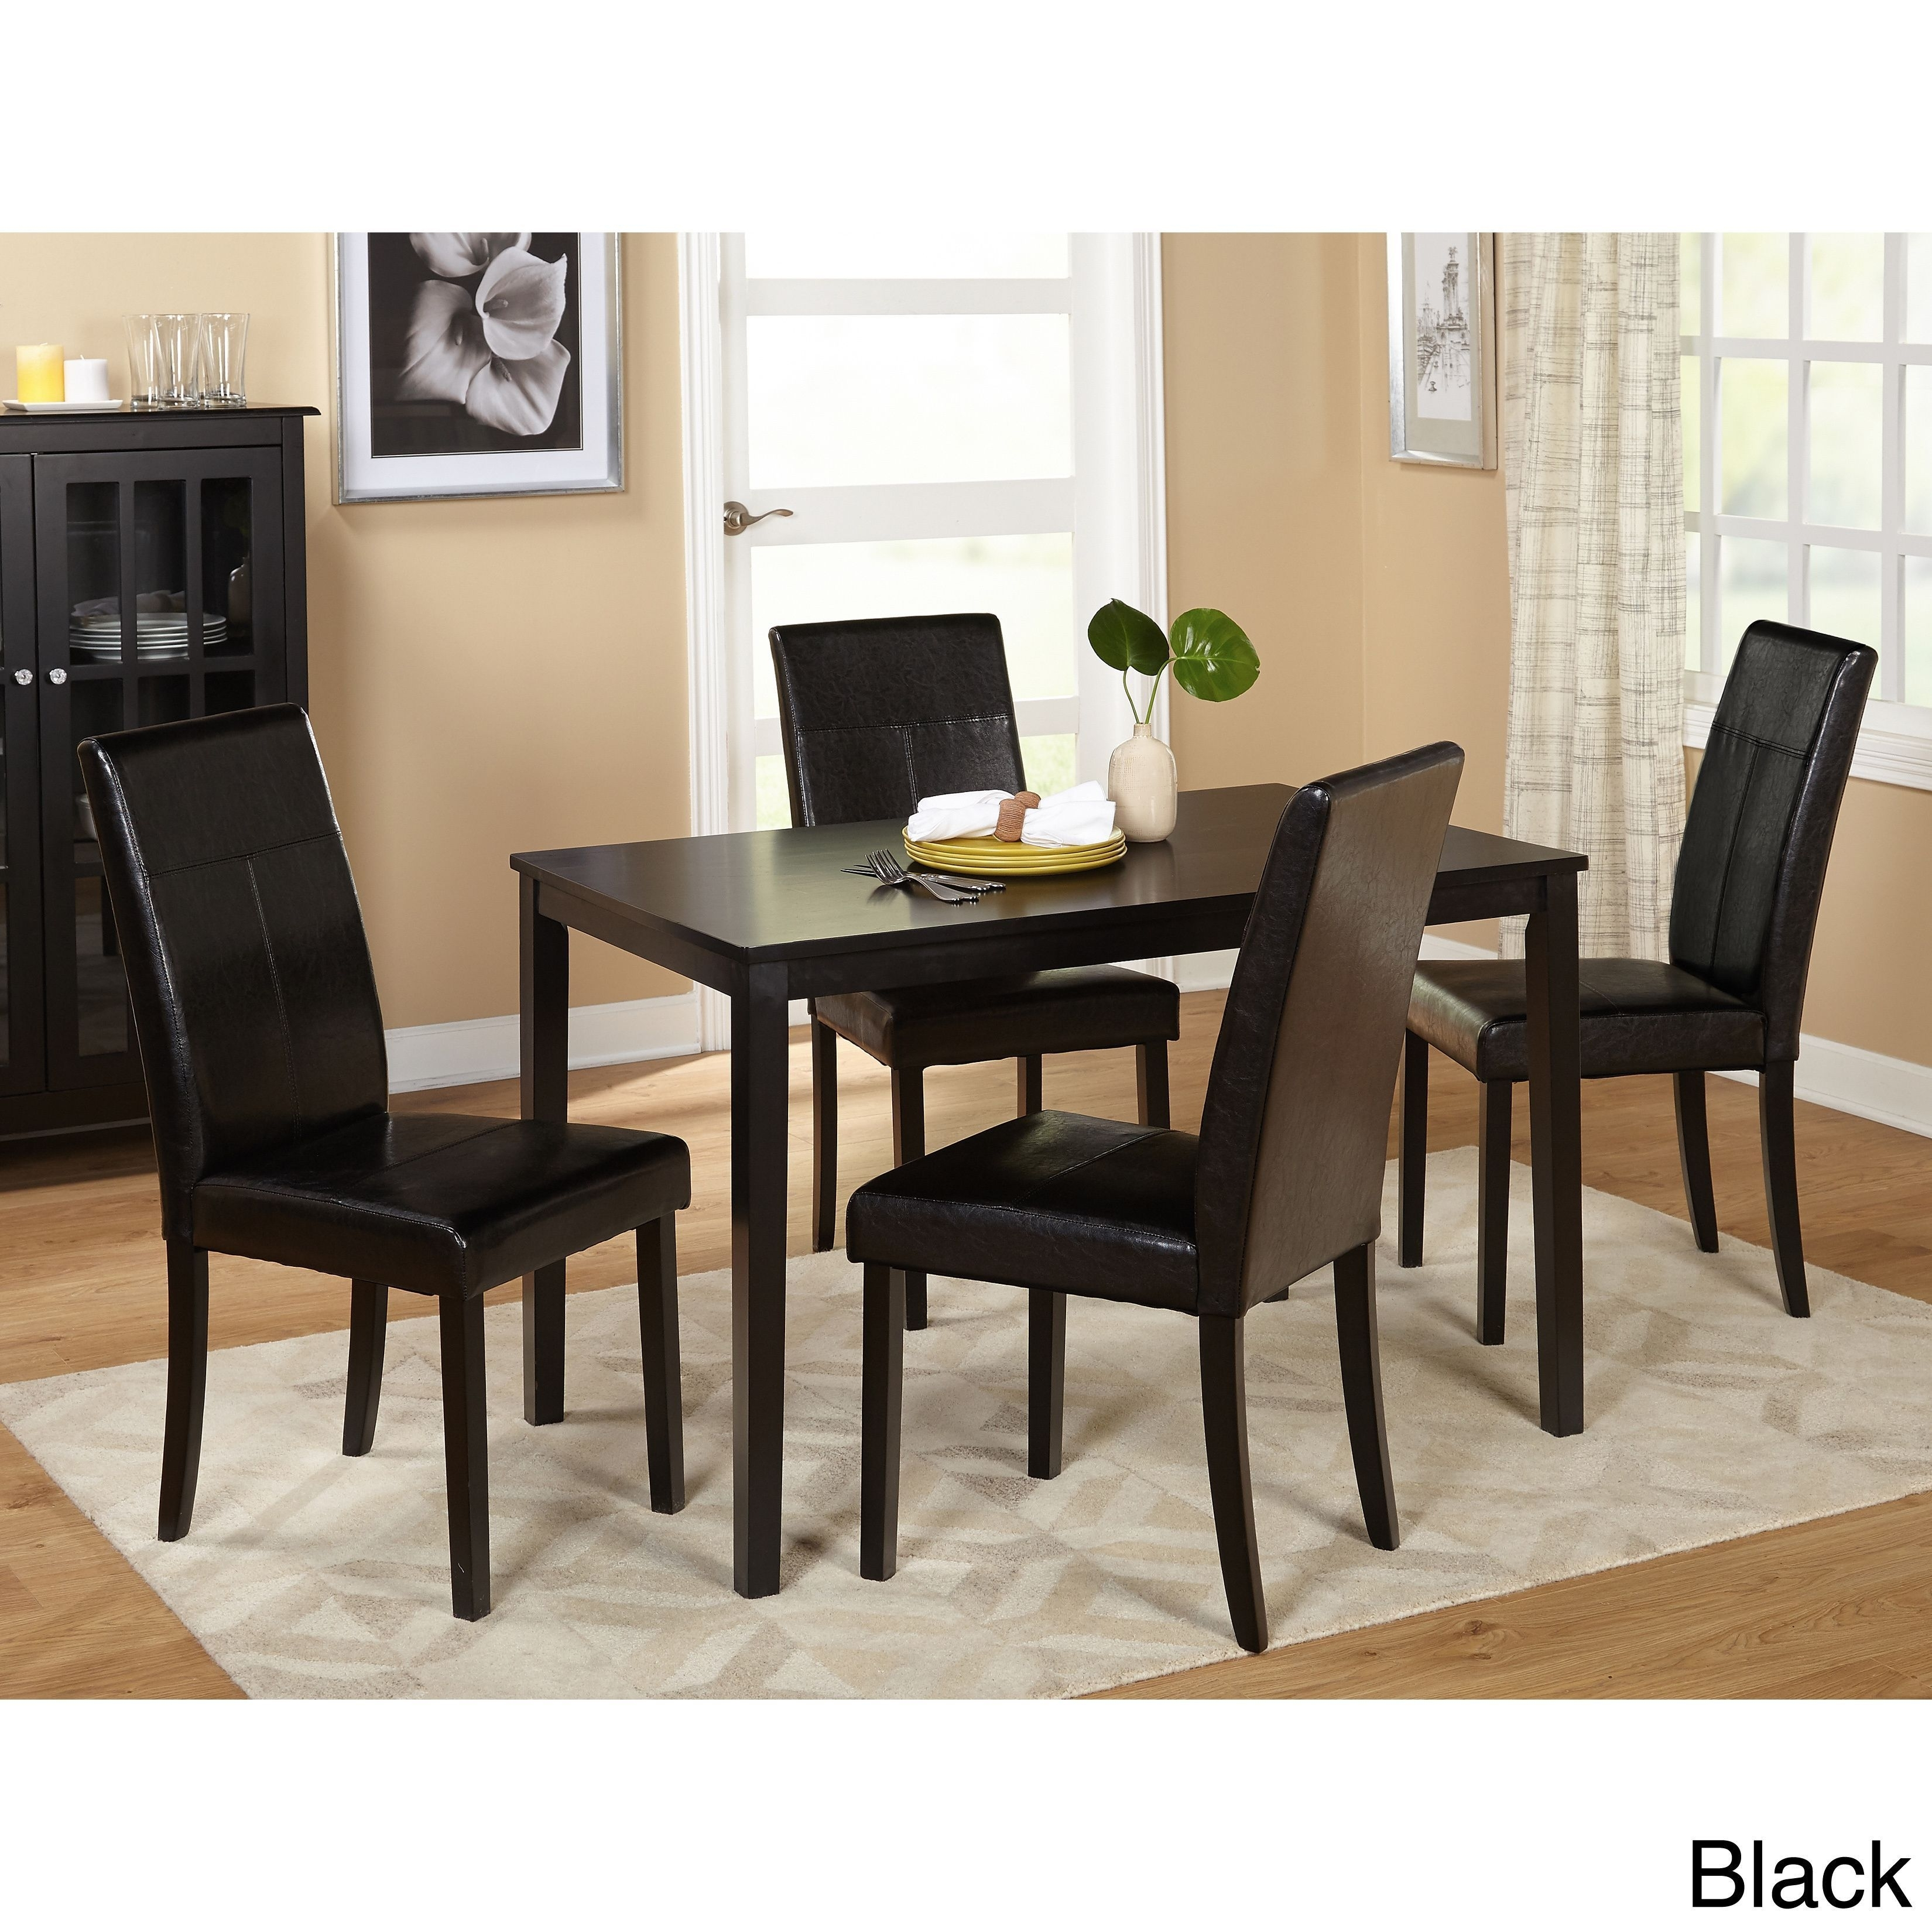 Toby 7 Piece Dining Setorren Ellis Reviews Intended For Newest Combs 5 Piece 48 Inch Extension Dining Sets With Mindy Side Chairs (View 10 of 20)